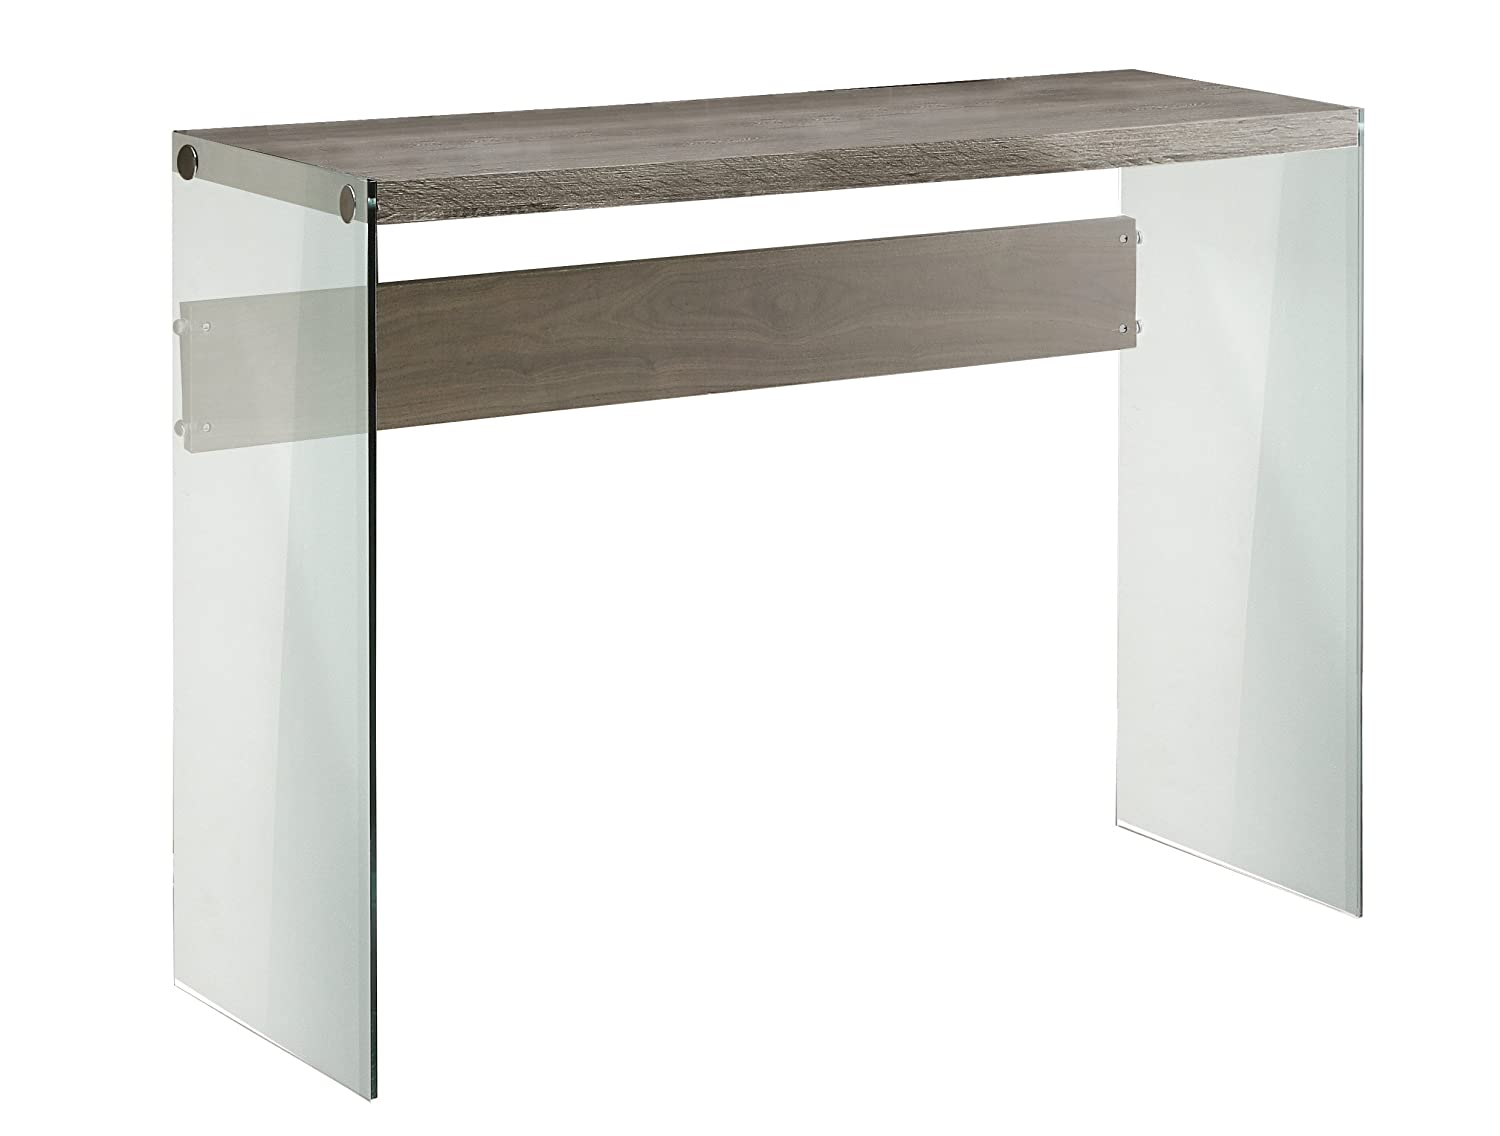 amazoncom monarch reclaimedlooktempered glass sofa table dark  - amazoncom monarch reclaimedlooktempered glass sofa table dark taupekitchen  dining